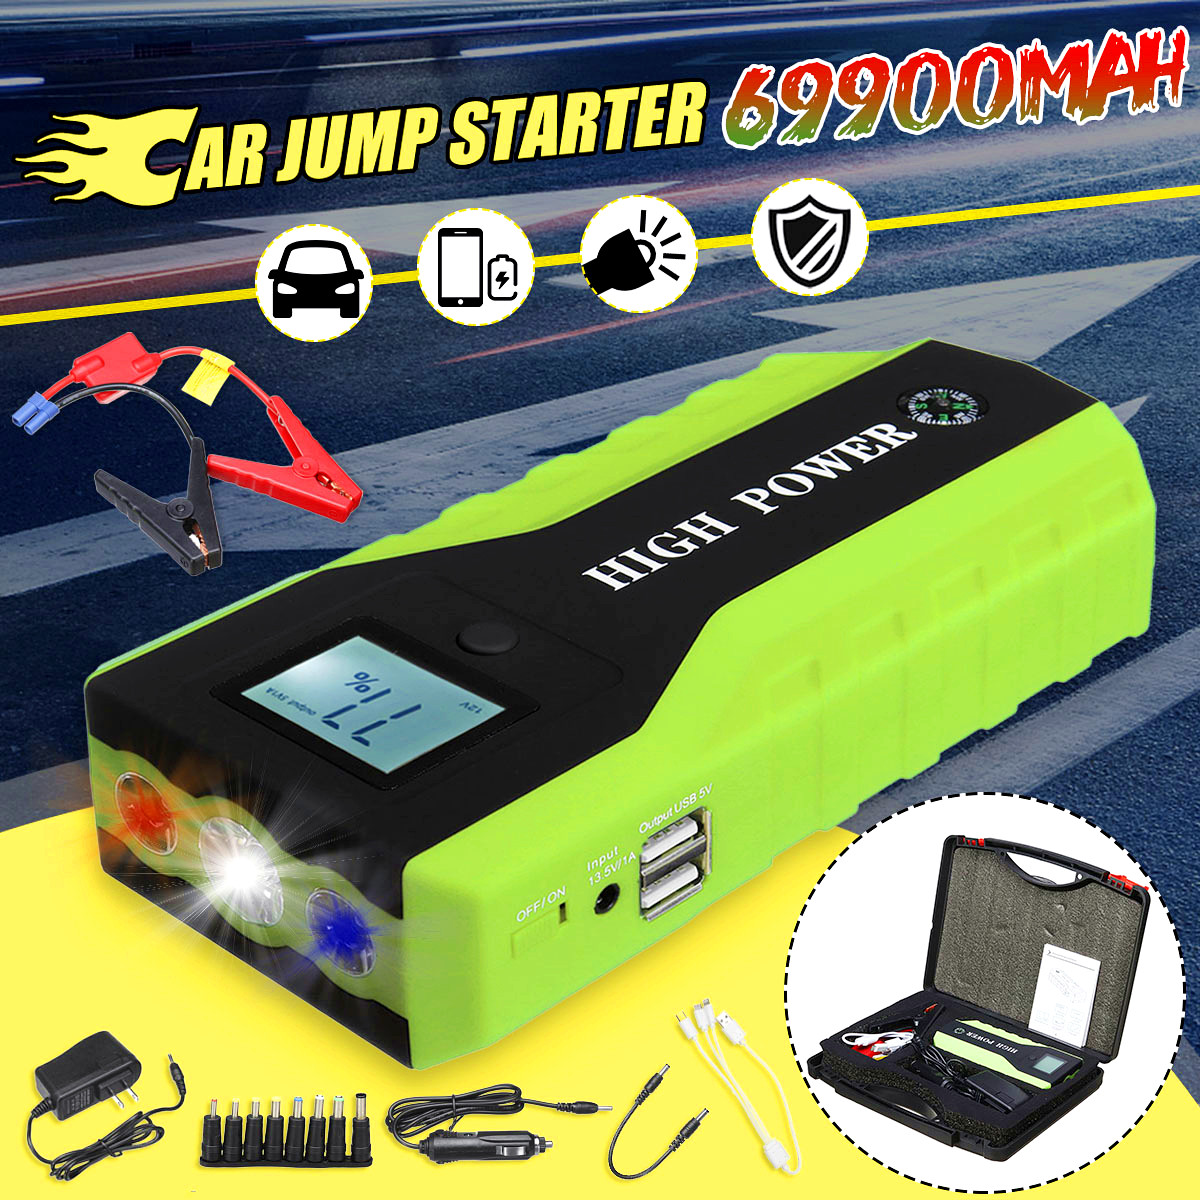 69900mAh 110-240 V 13.5 V Car Jump Starter con caricatore rapido USB Built-in LED illuminazione multifunzione Car Emergency Power Bank